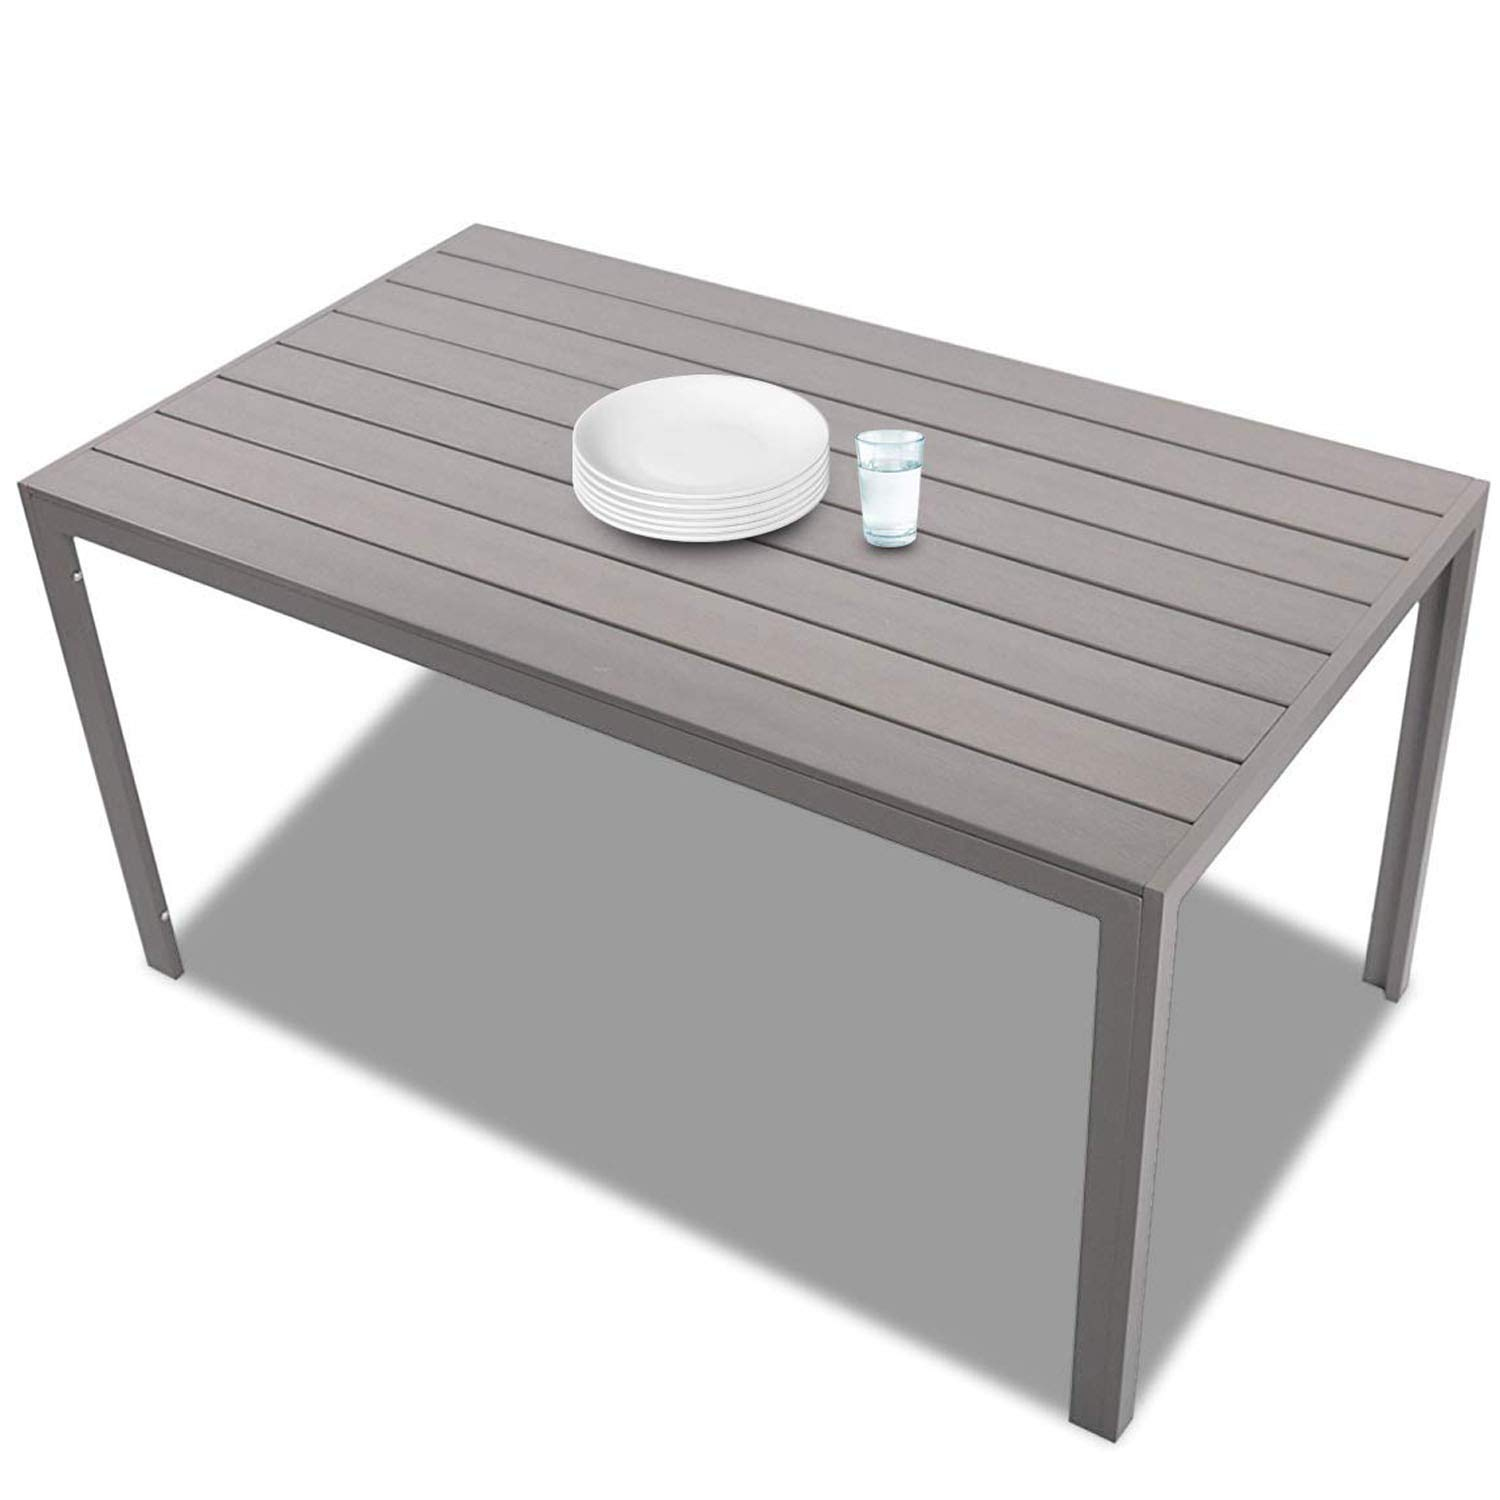 Outdoor Dining Table for 9, Patio Rectangle Aluminum Table